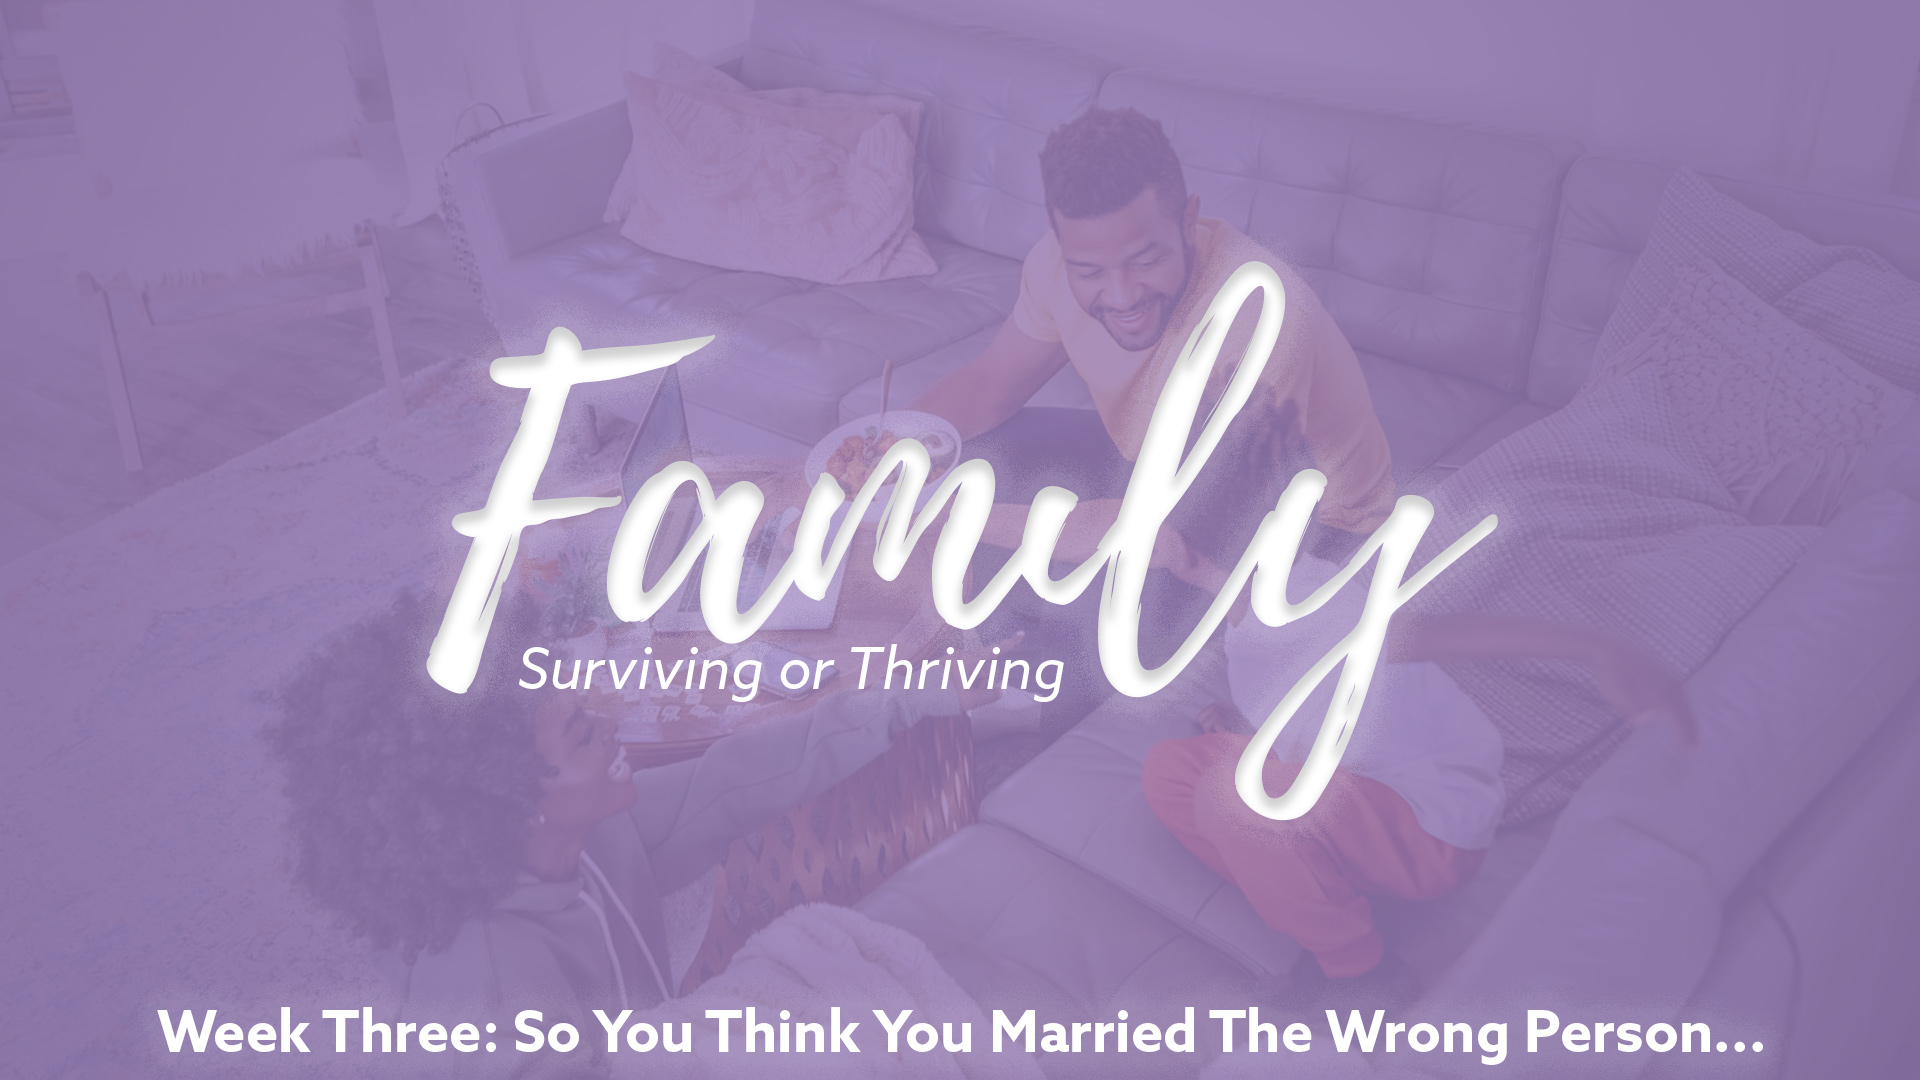 Family – Surviving or Thriving: So You Think You Married The Wrong Person